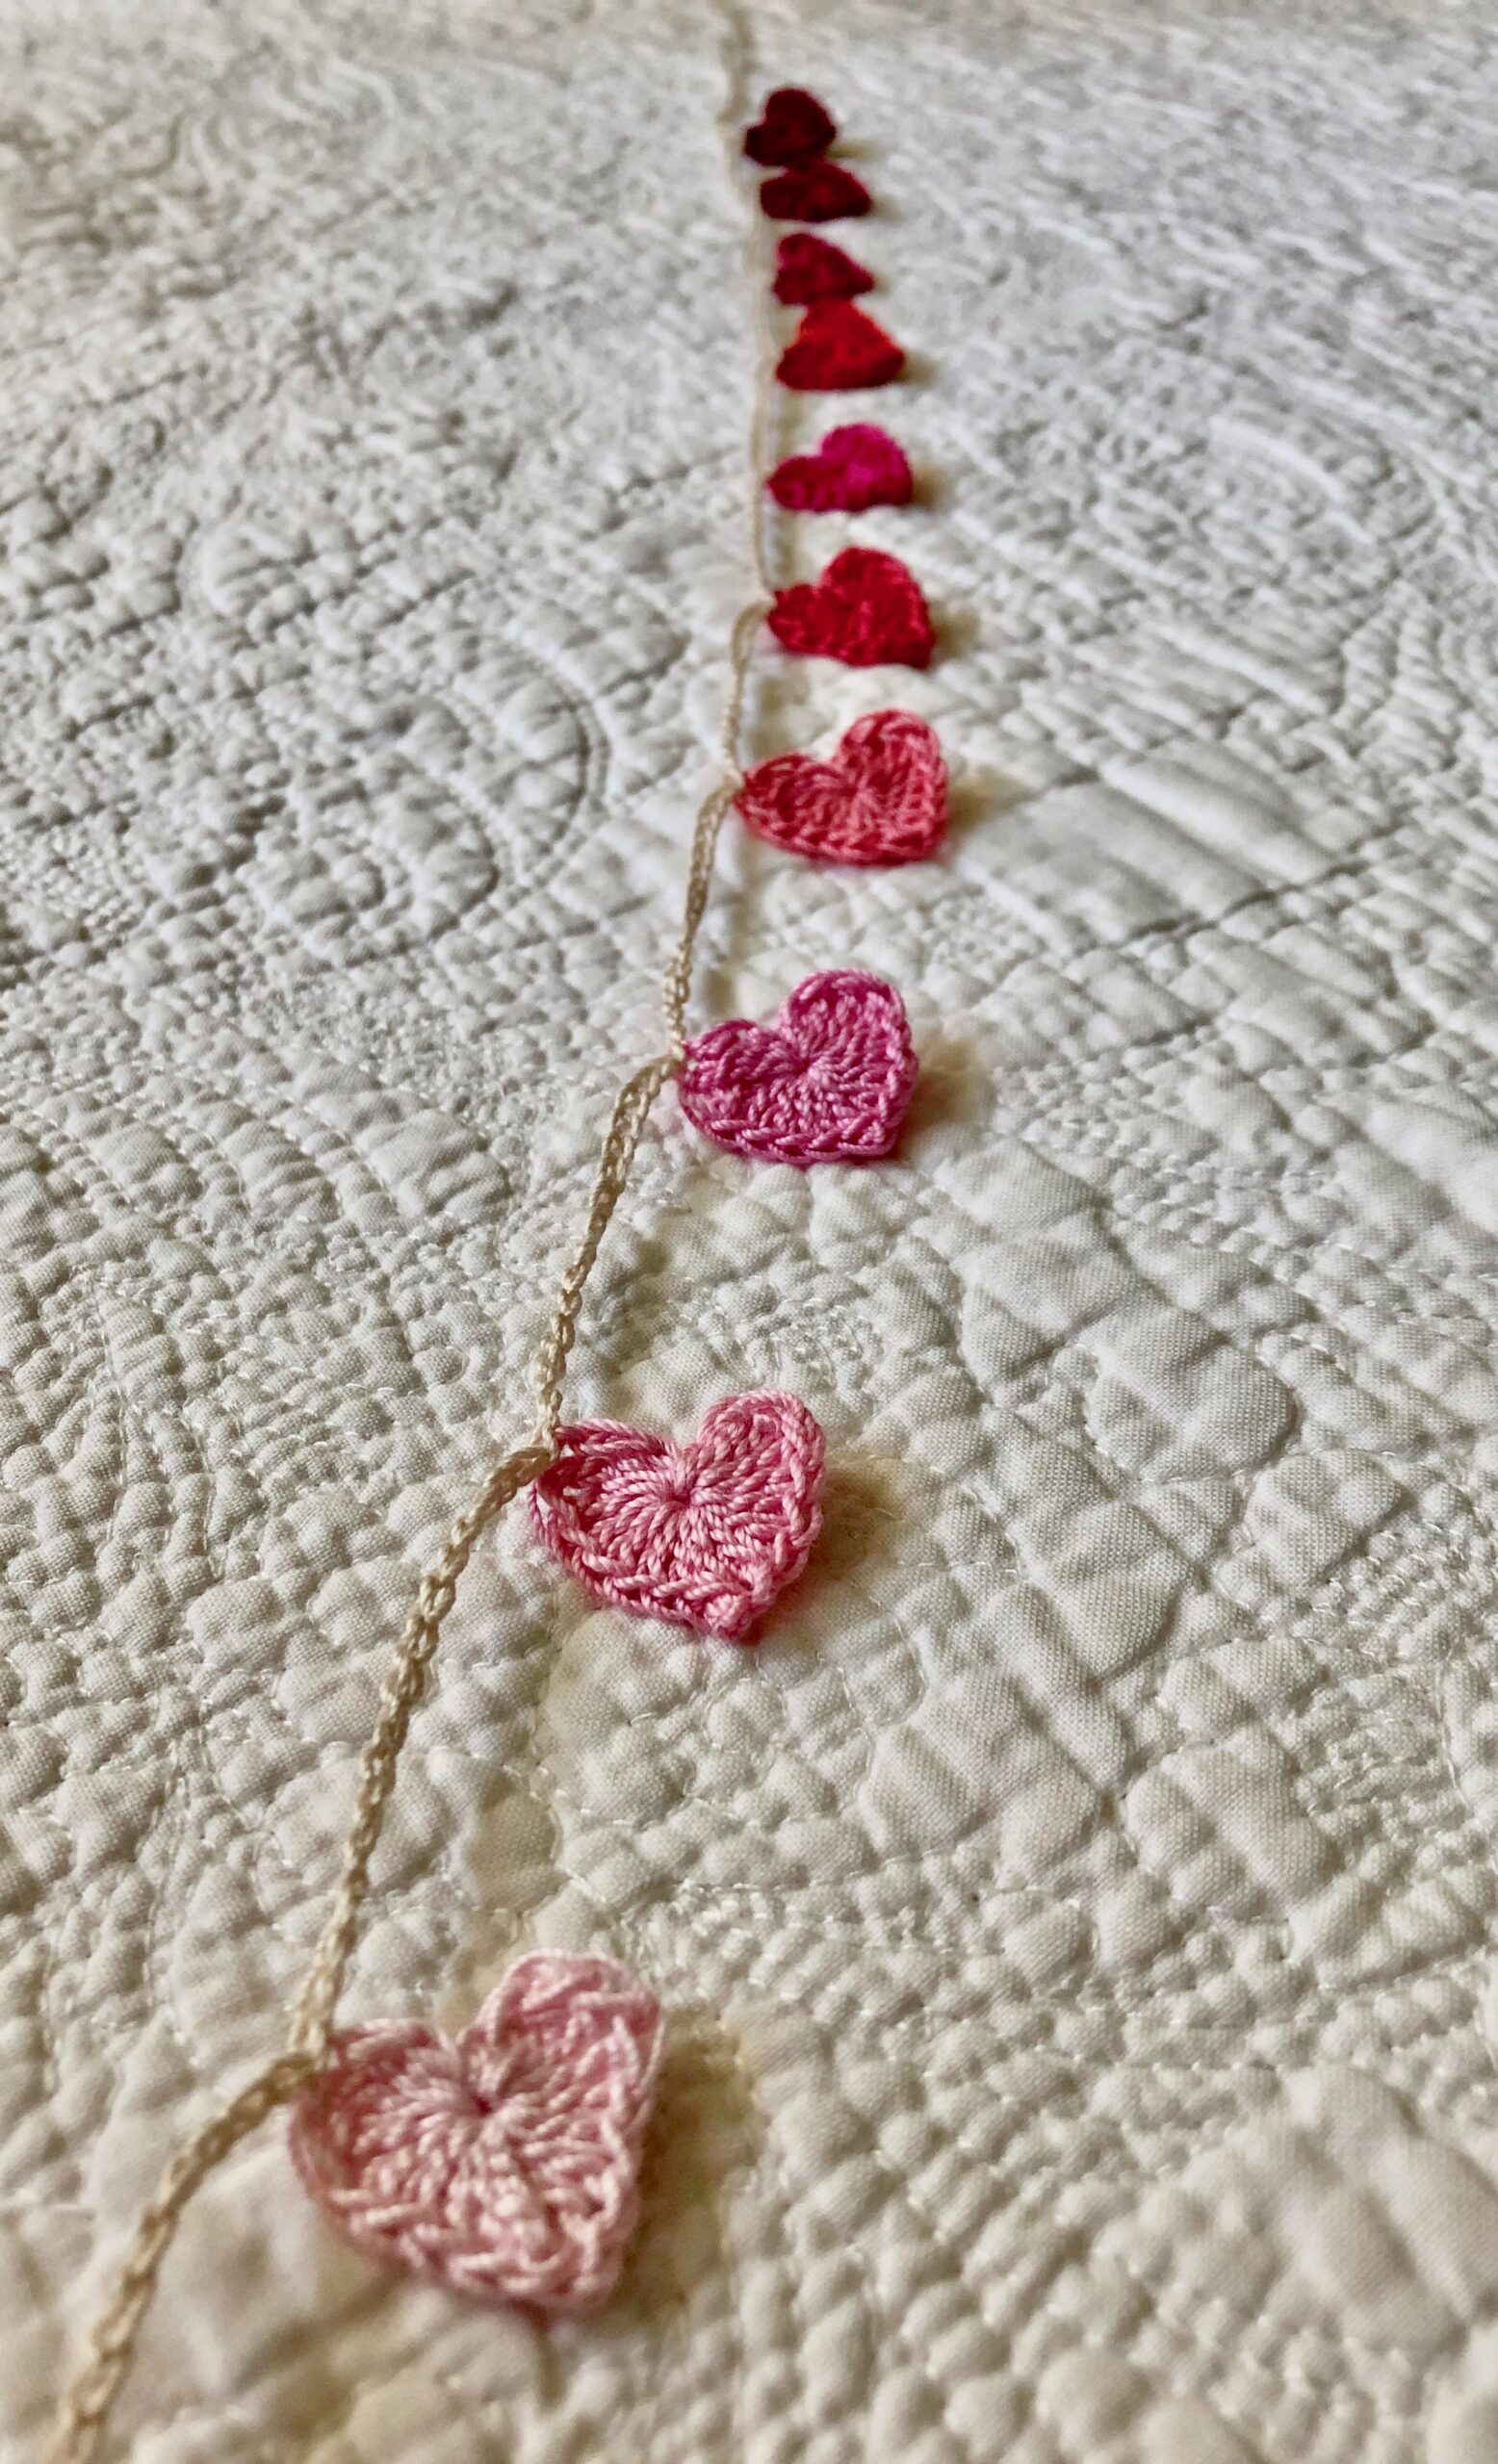 Hearts on a string.